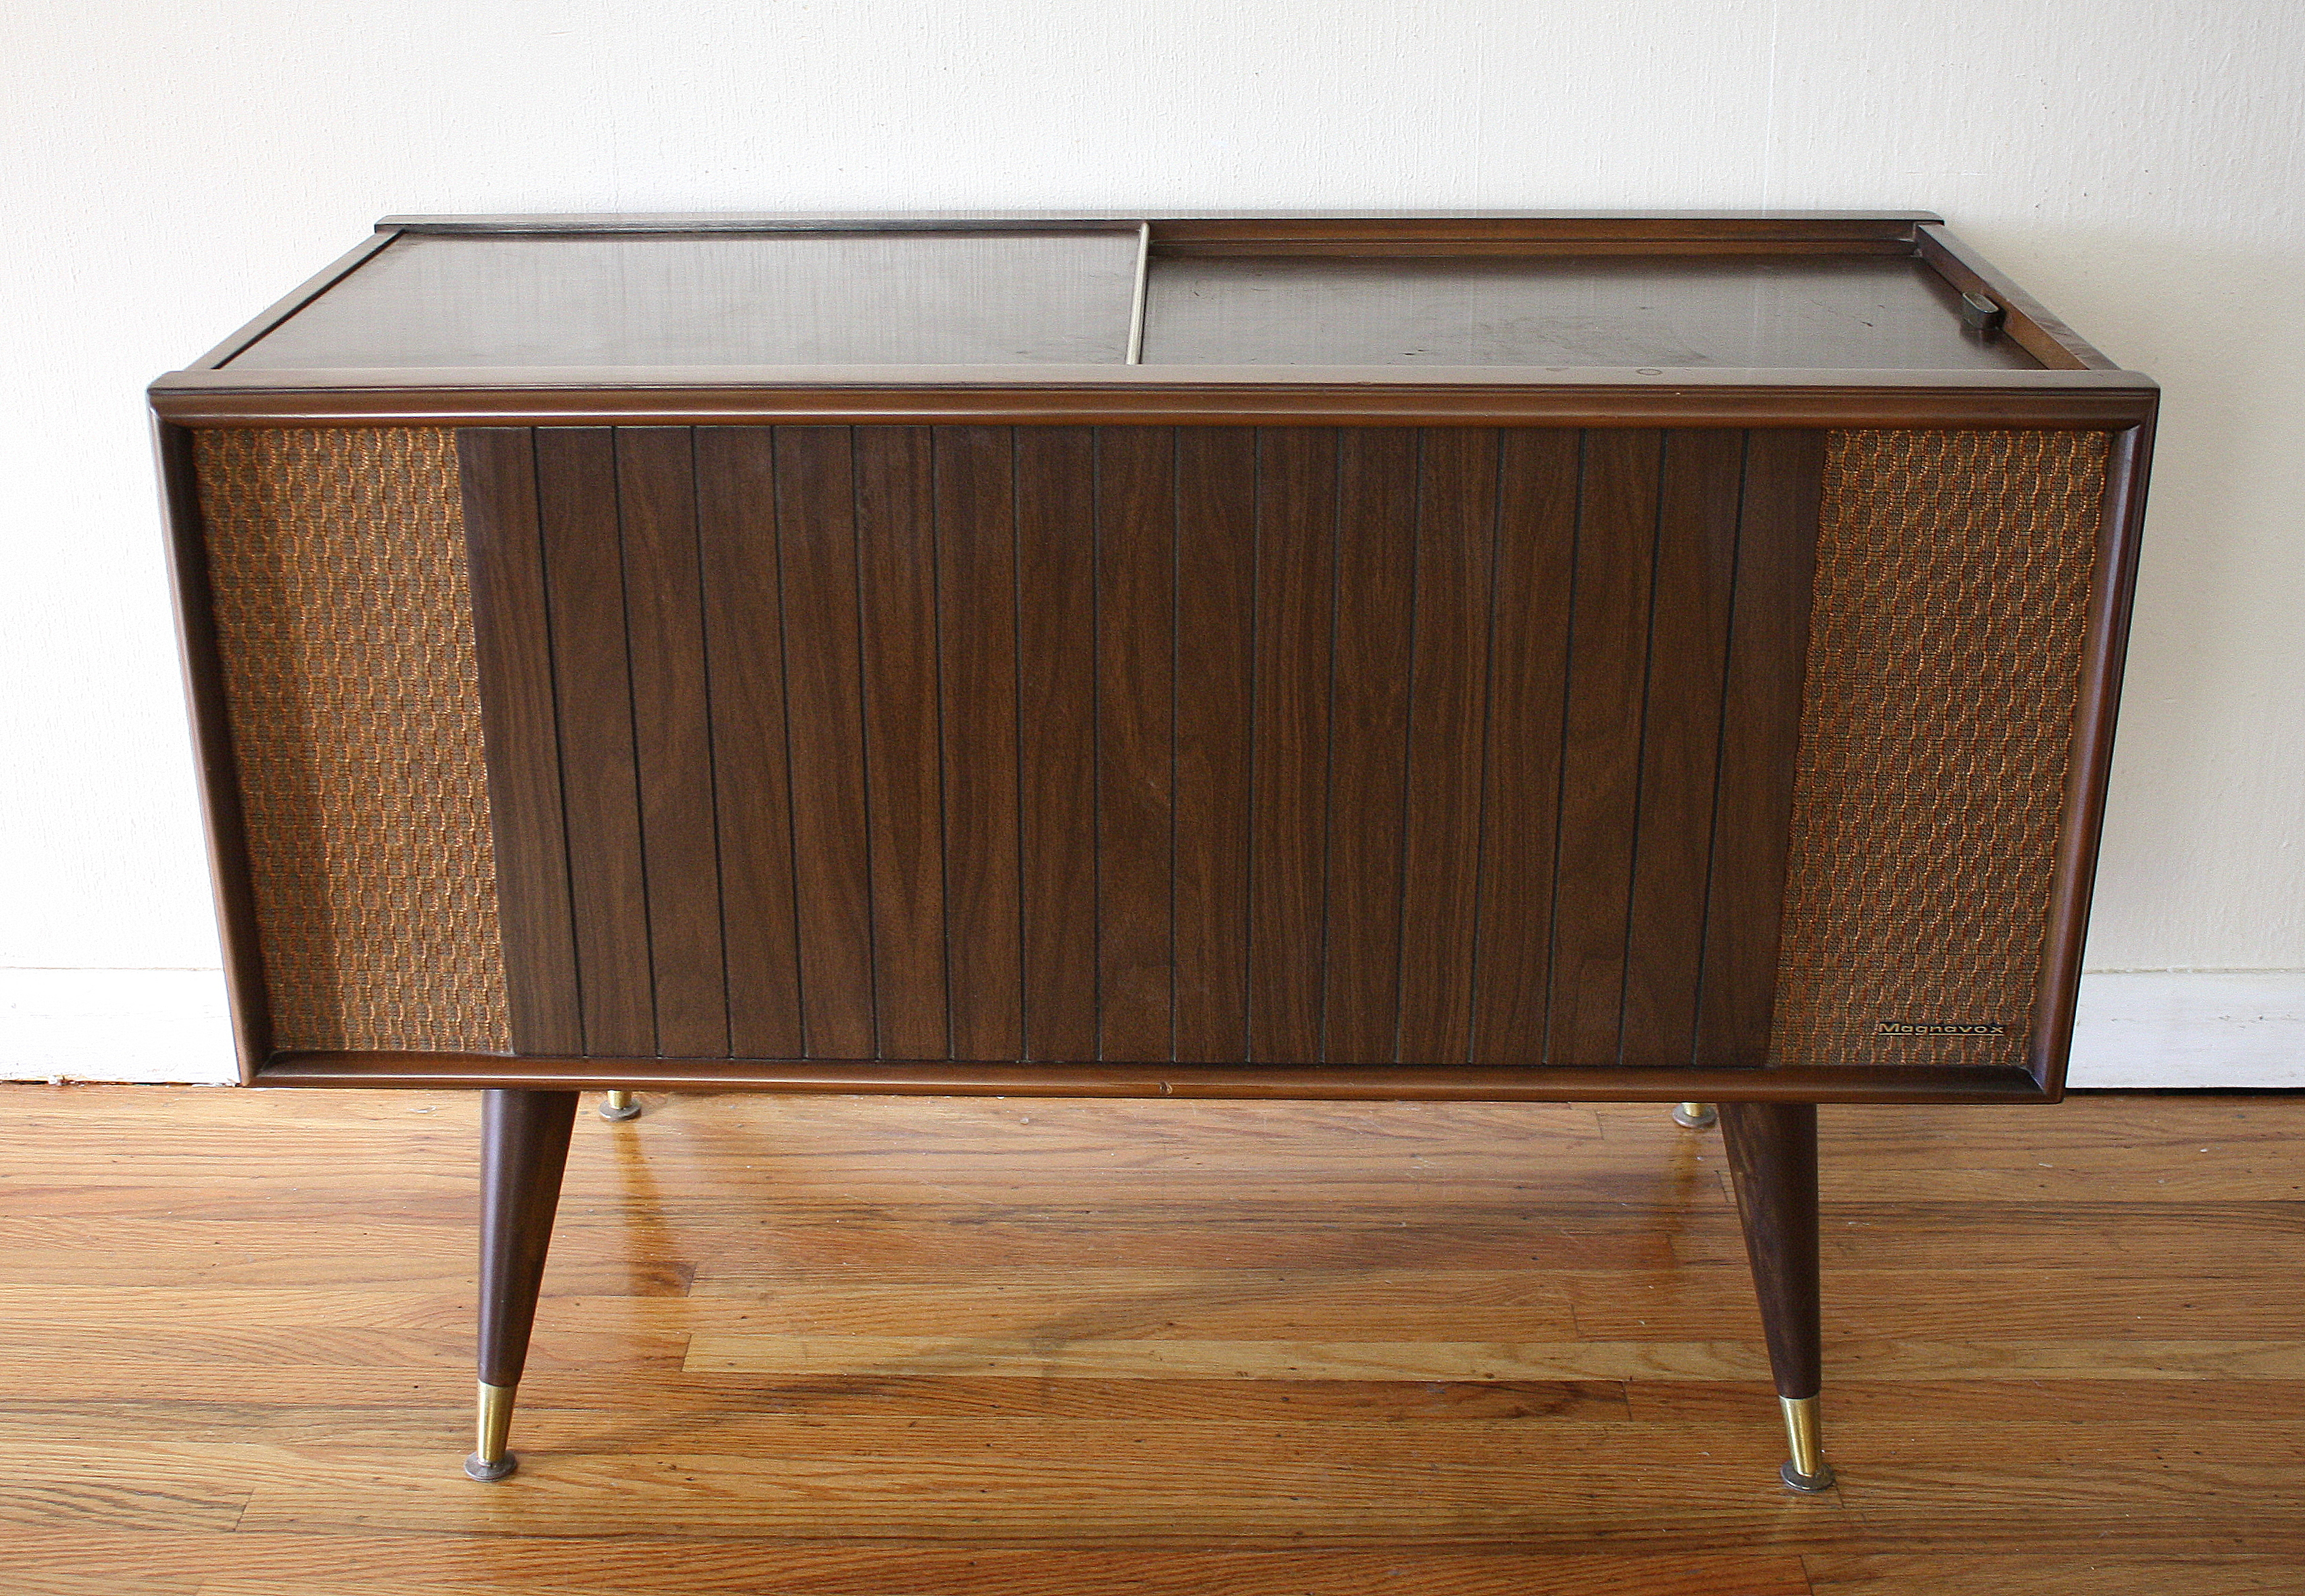 Vintage Record Player Cabinet Magnavox Images & Pictures - Becuo